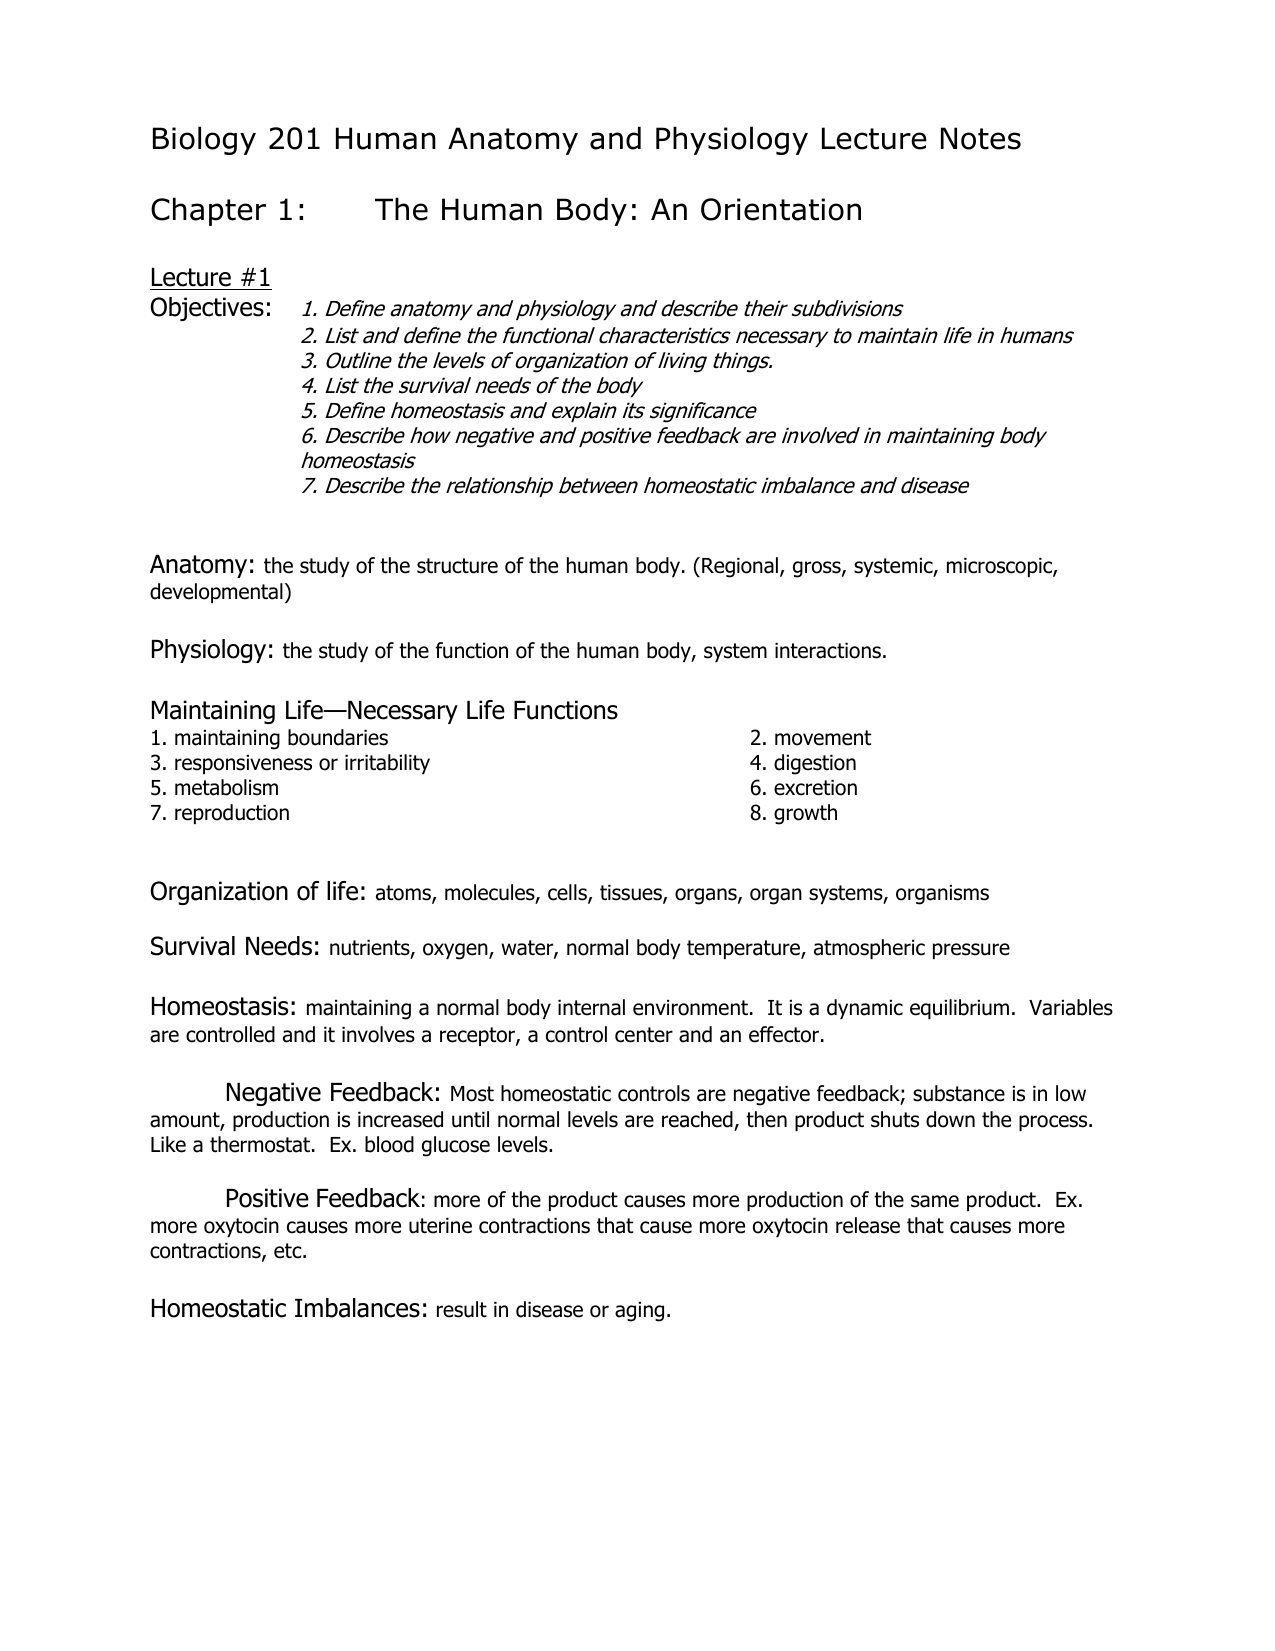 Biology 201 Human Anatomy And Physiology Lecture Notes